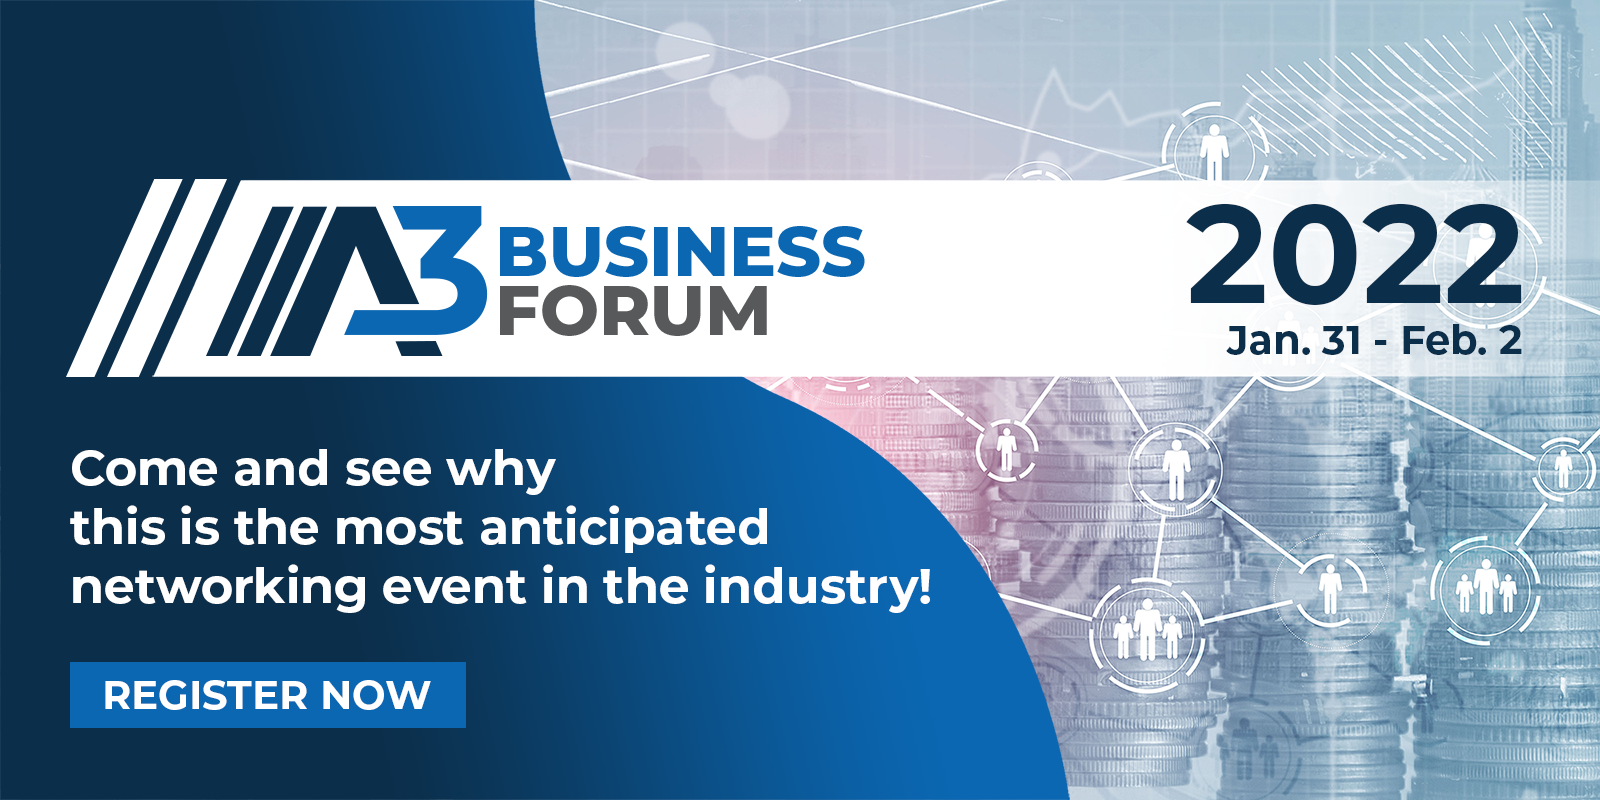 A3 Business Forum. Jan. 31-Feb. 2, 2022. Come and see why this is the most aniticipated networking event in the industry! Click to register.